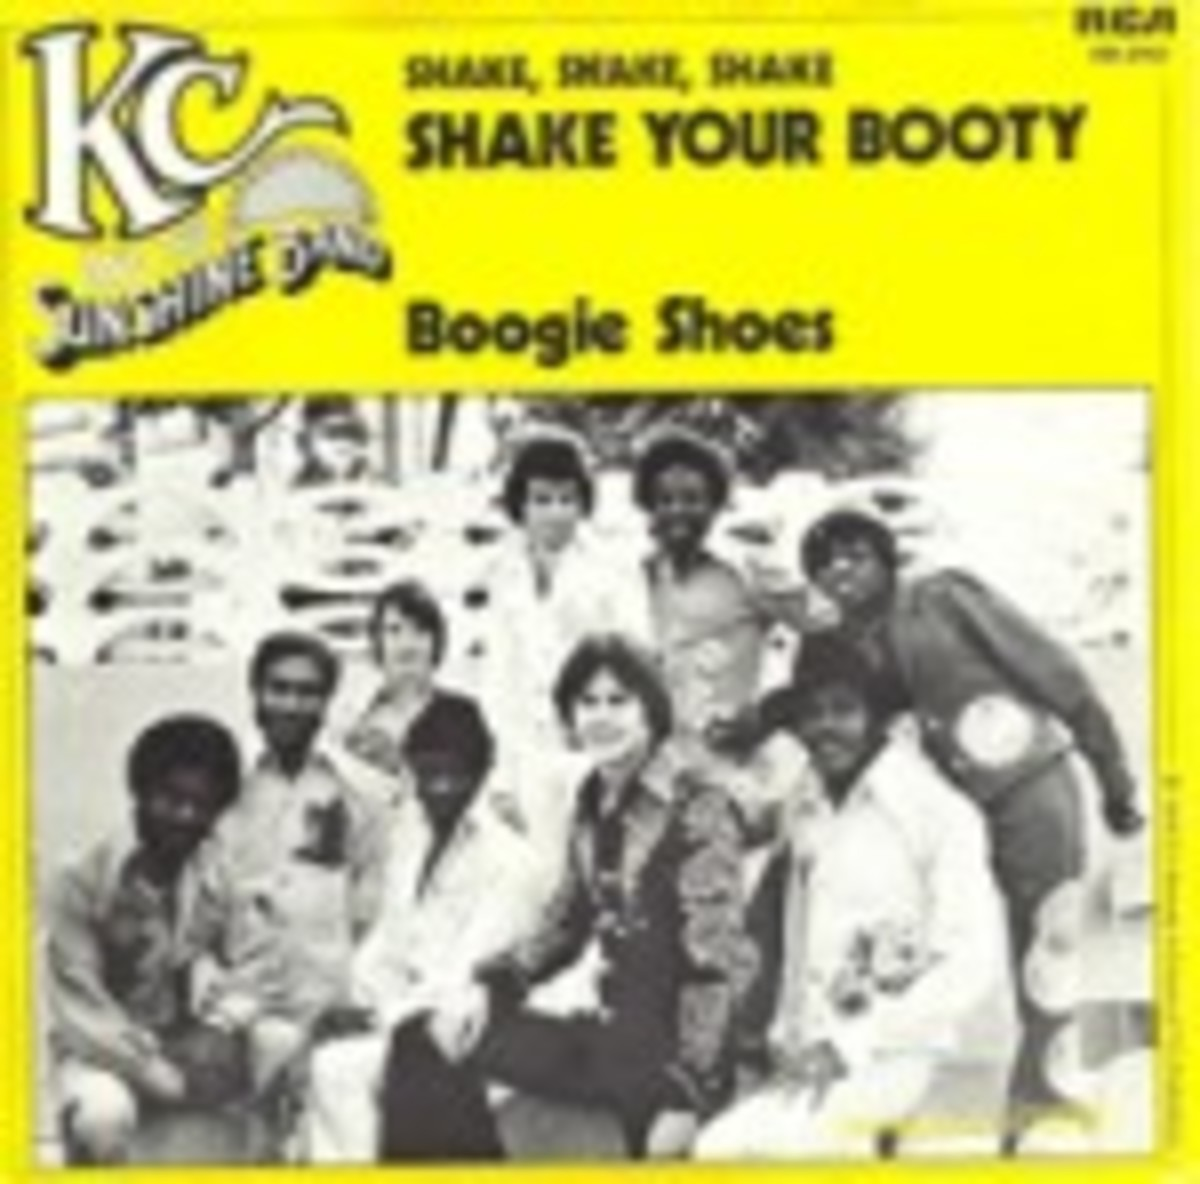 KC and the Sunshine Band Shake Your Booty